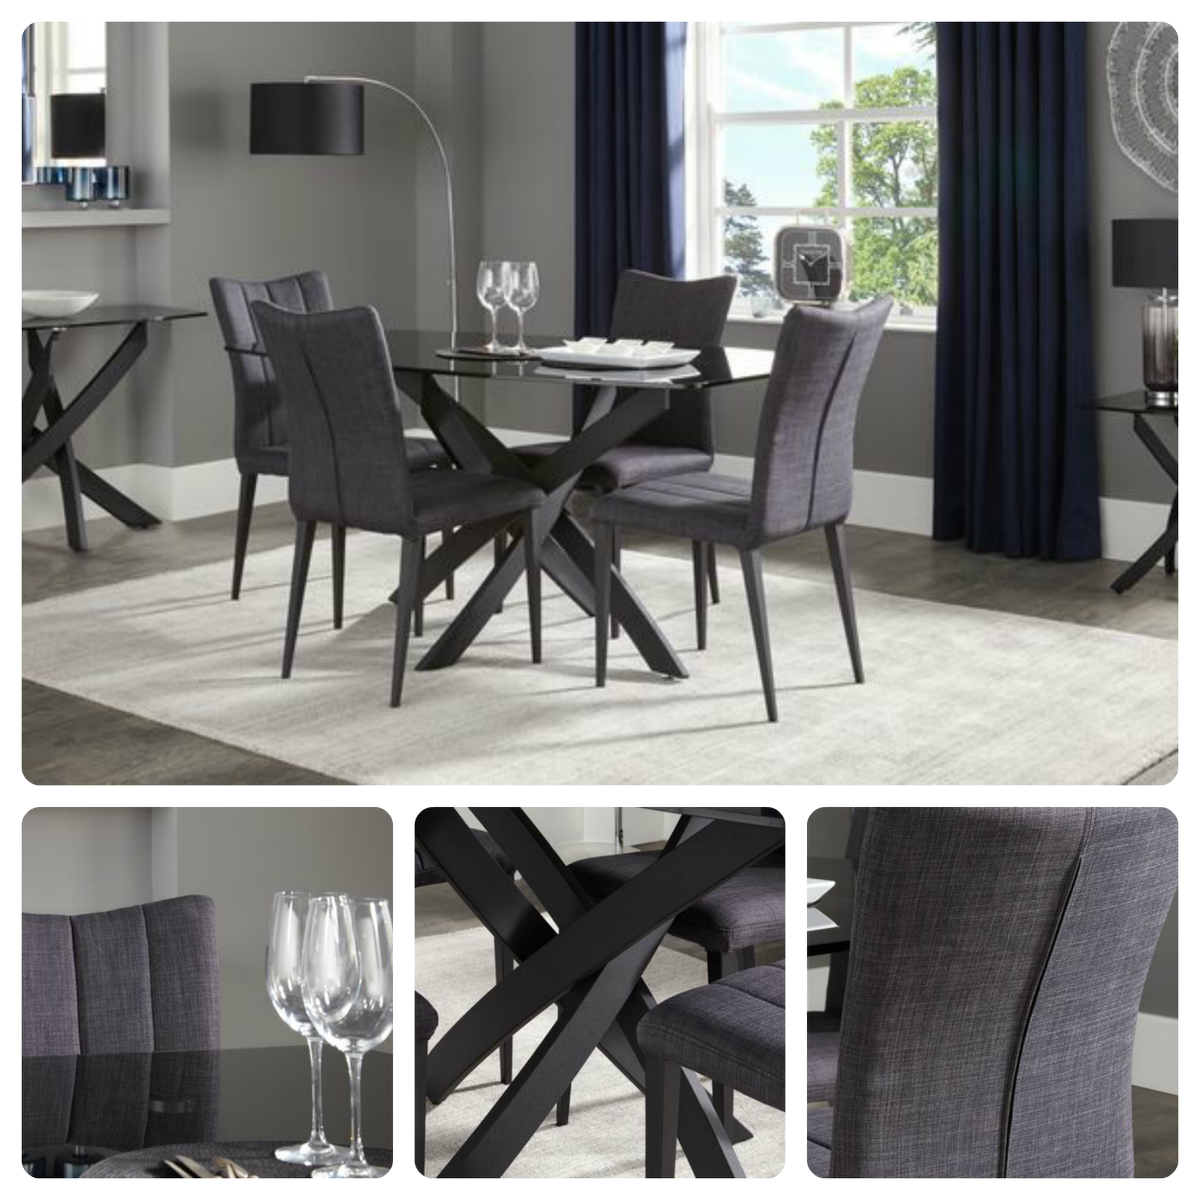 Could A New Dining Table, Like This Stylish Mosaic Table And Chairs, Give  You The Motivation To Spend More Time Eating Together As A Family? ...